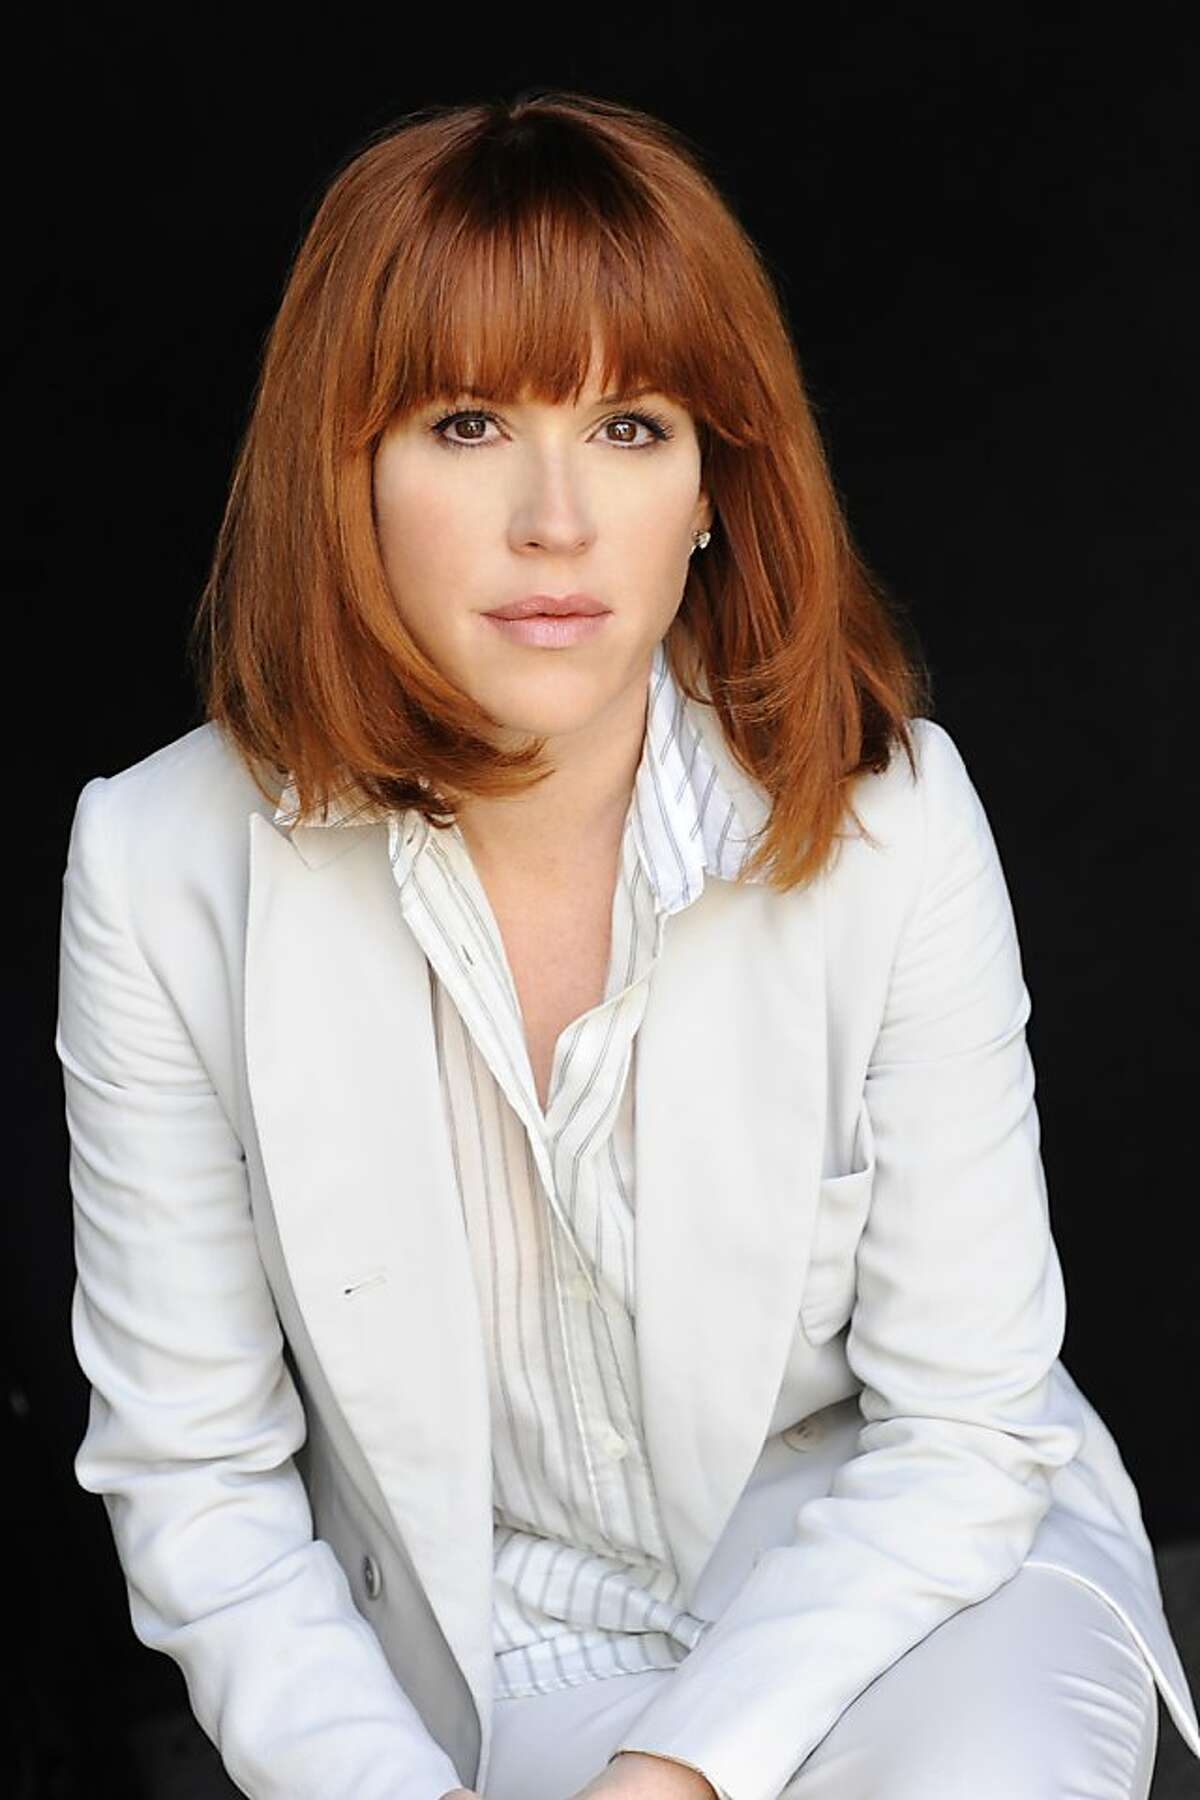 Molly Ringwald's debut novel is